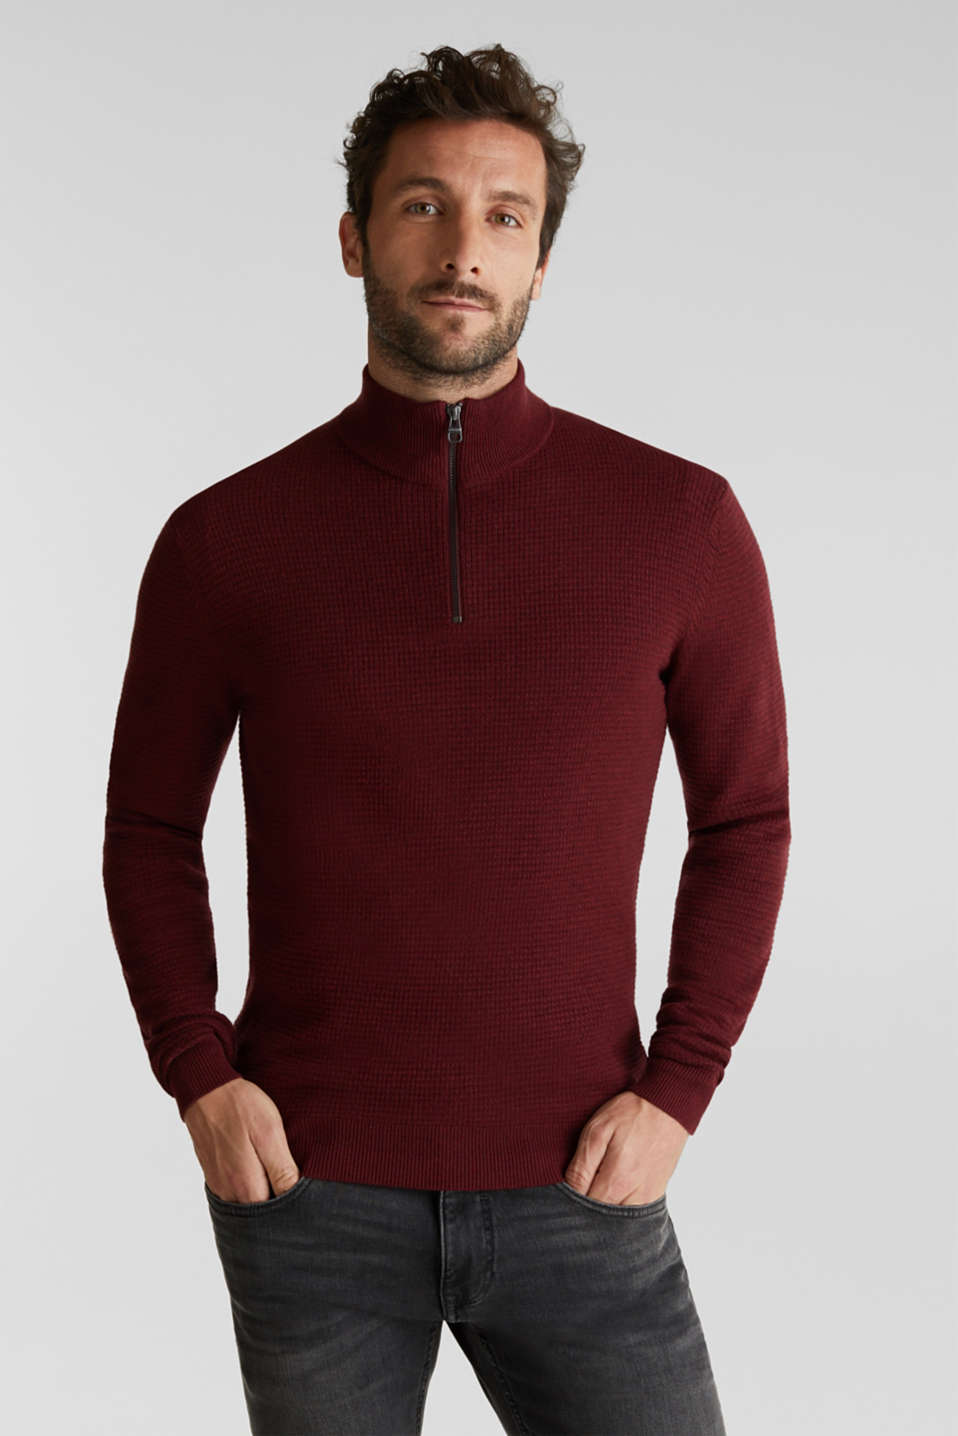 With cashmere: Textured knit jumper, DARK RED, detail image number 0